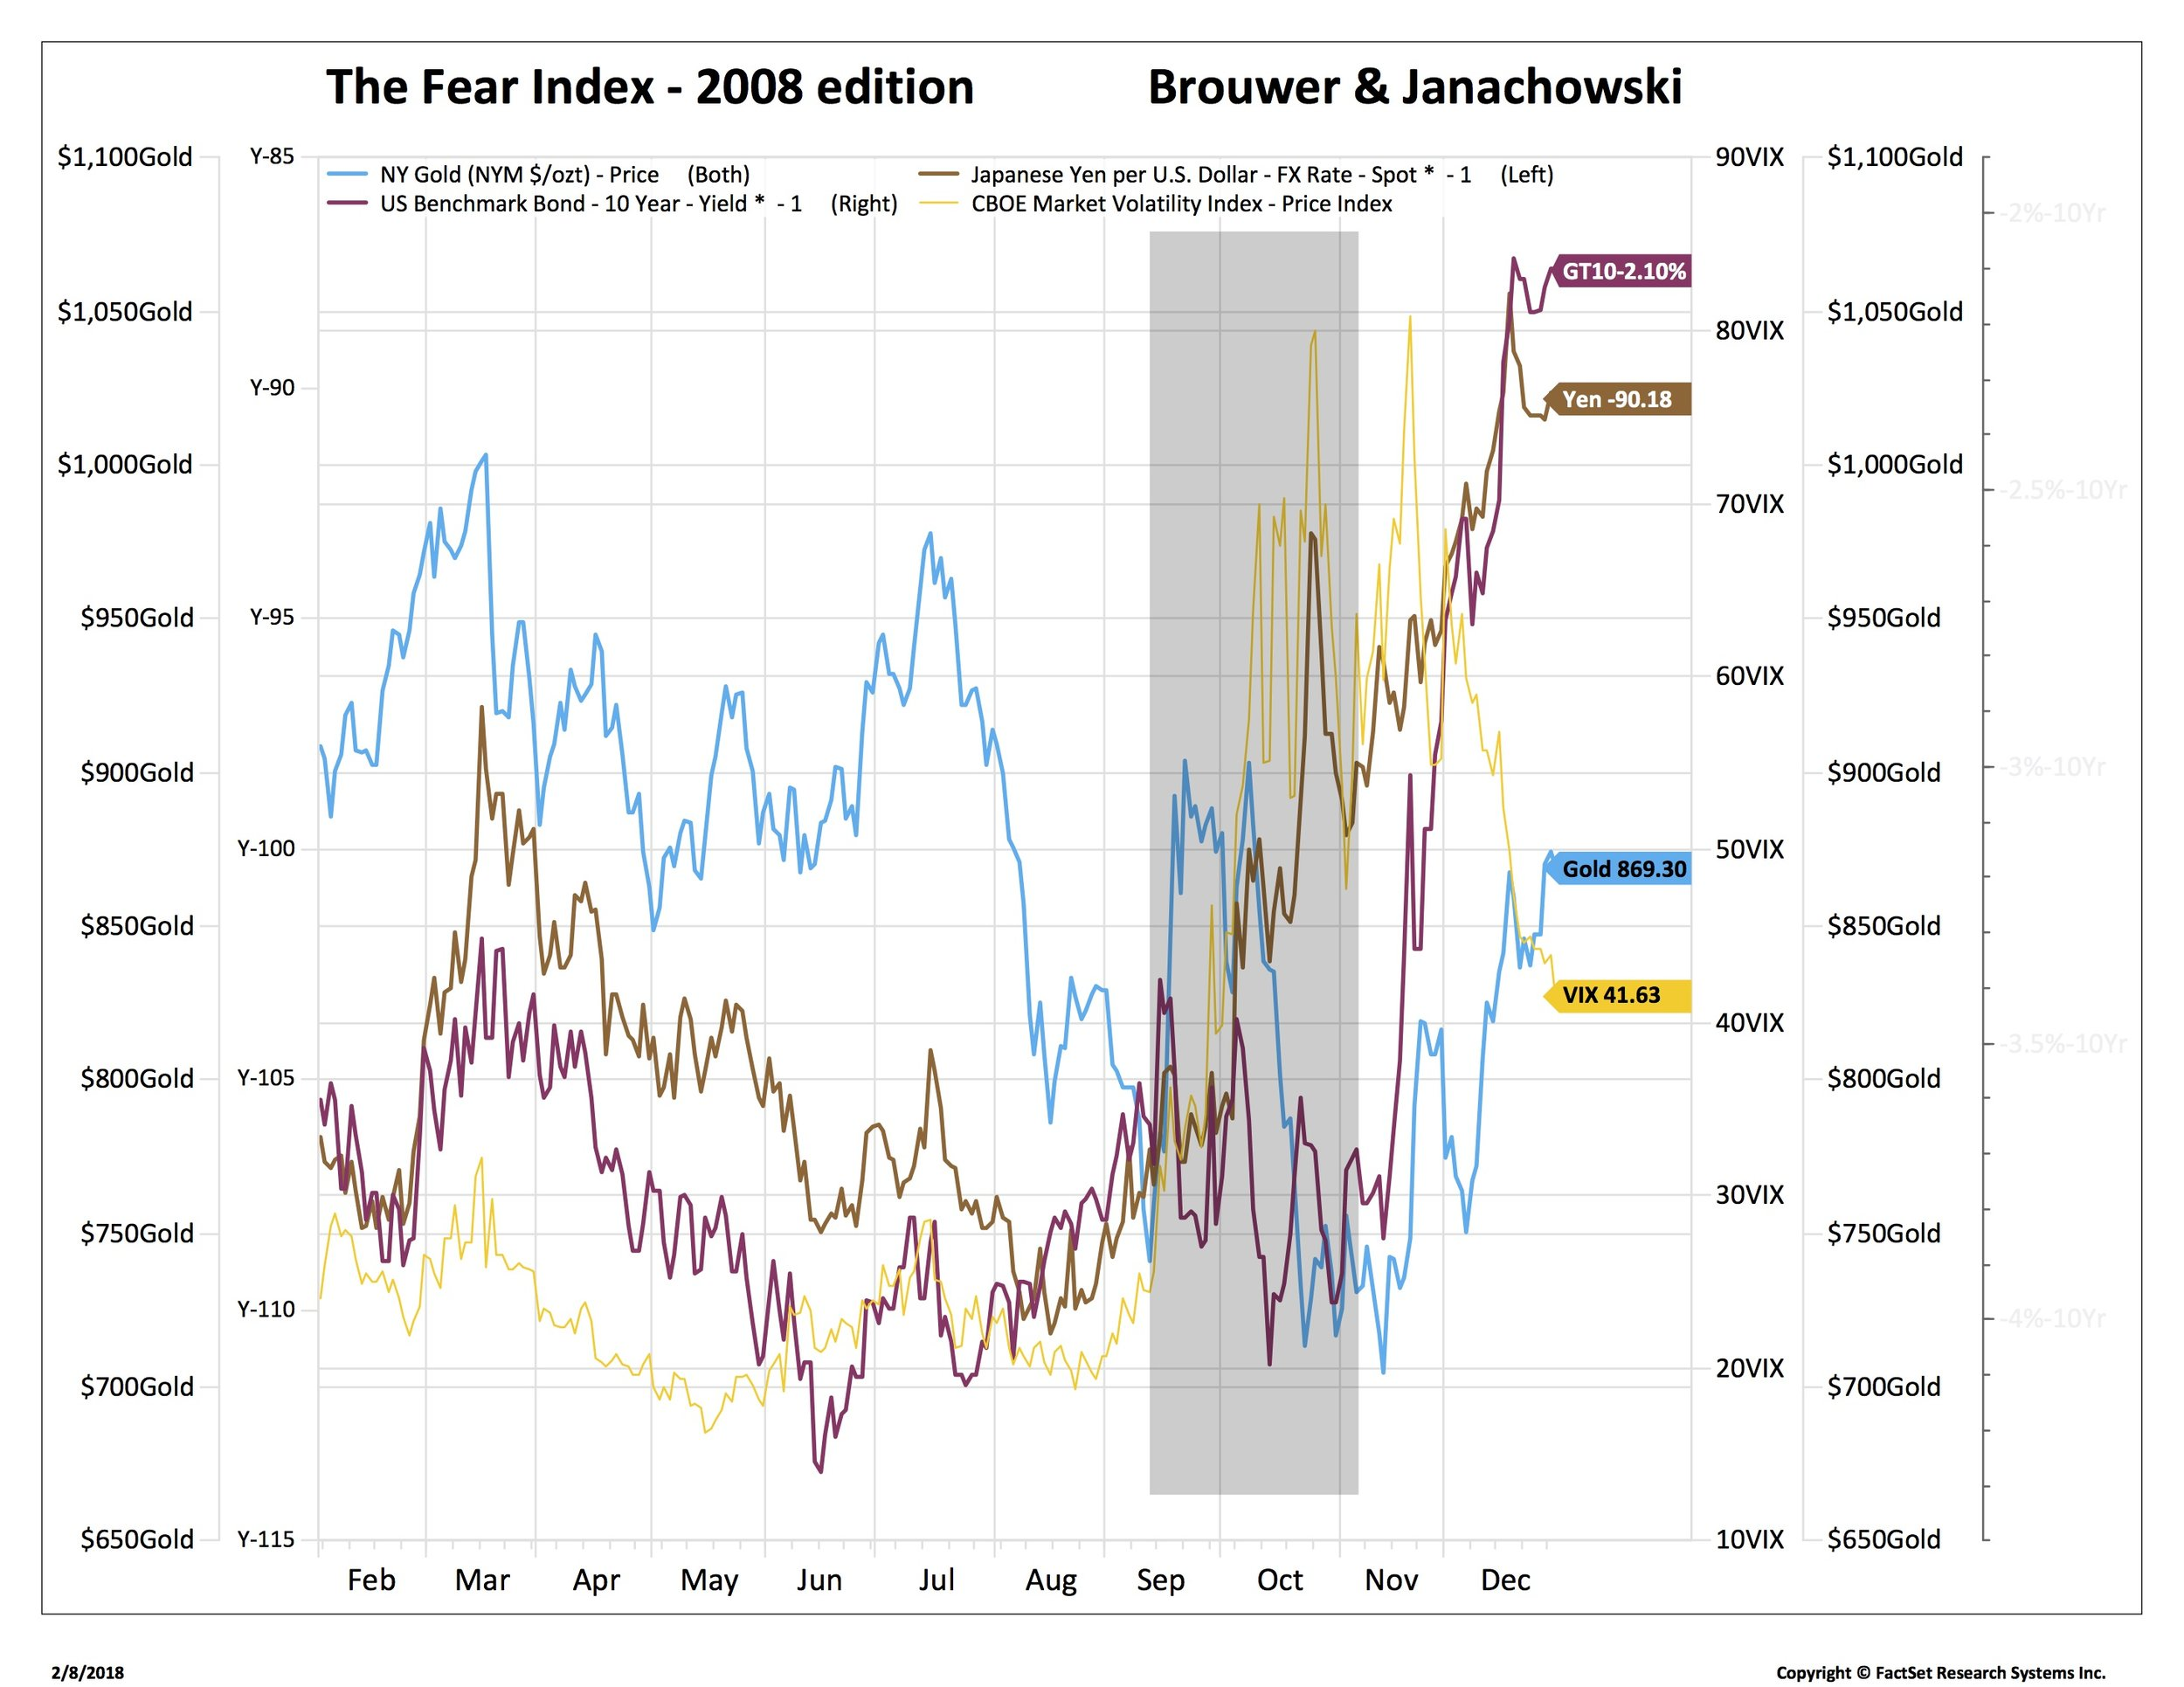 Blog 3 2-8-18 fear 4 gold rates core 1 - lehman_NYGOLD-FDS.jpg